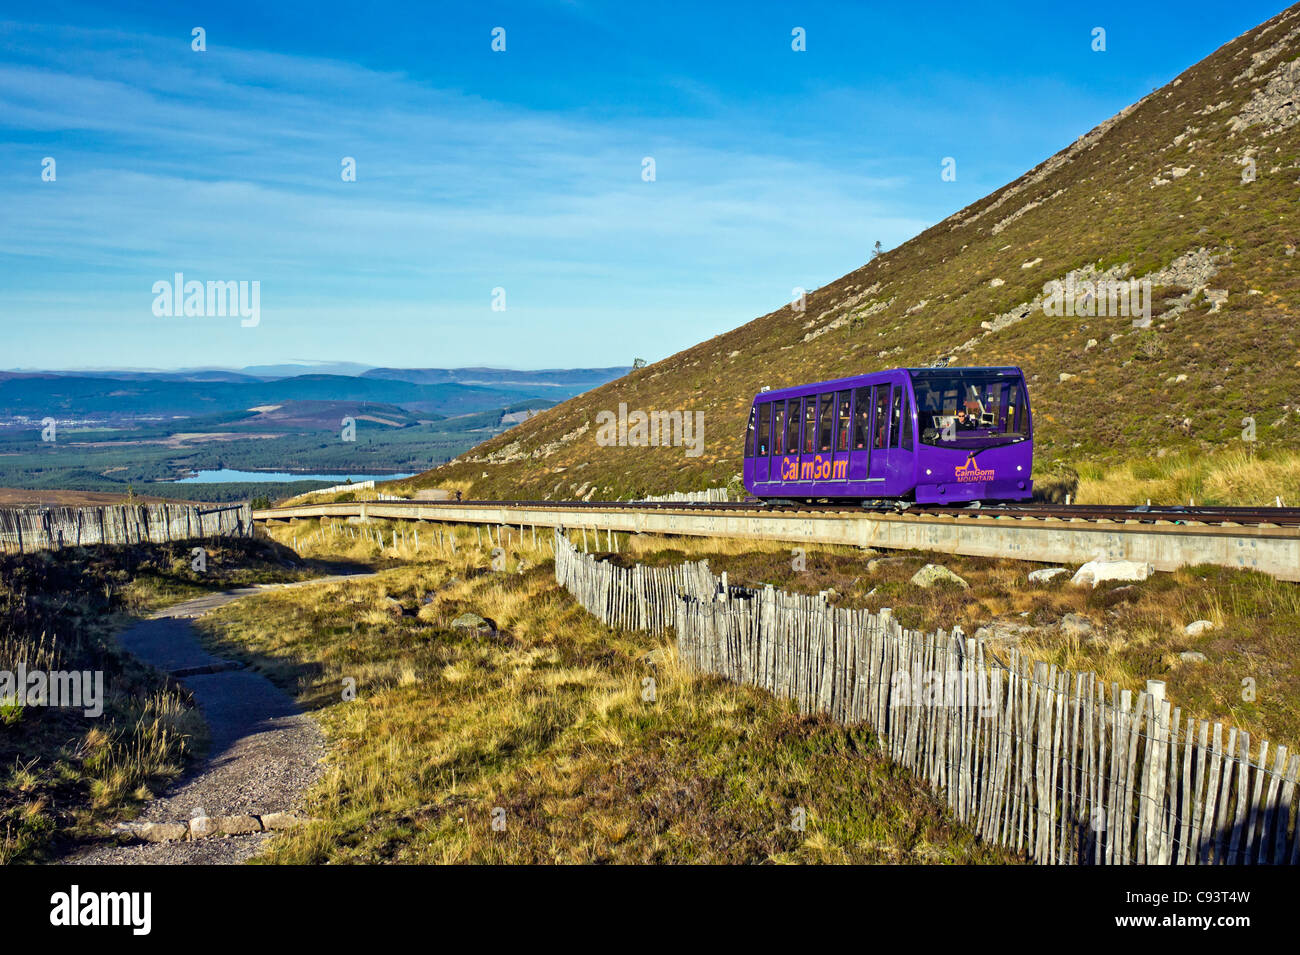 The Cairngorm Mountain funicular installation on Cairn Gorm in Cairngorm National Park Scotland with funicular car - Stock Image